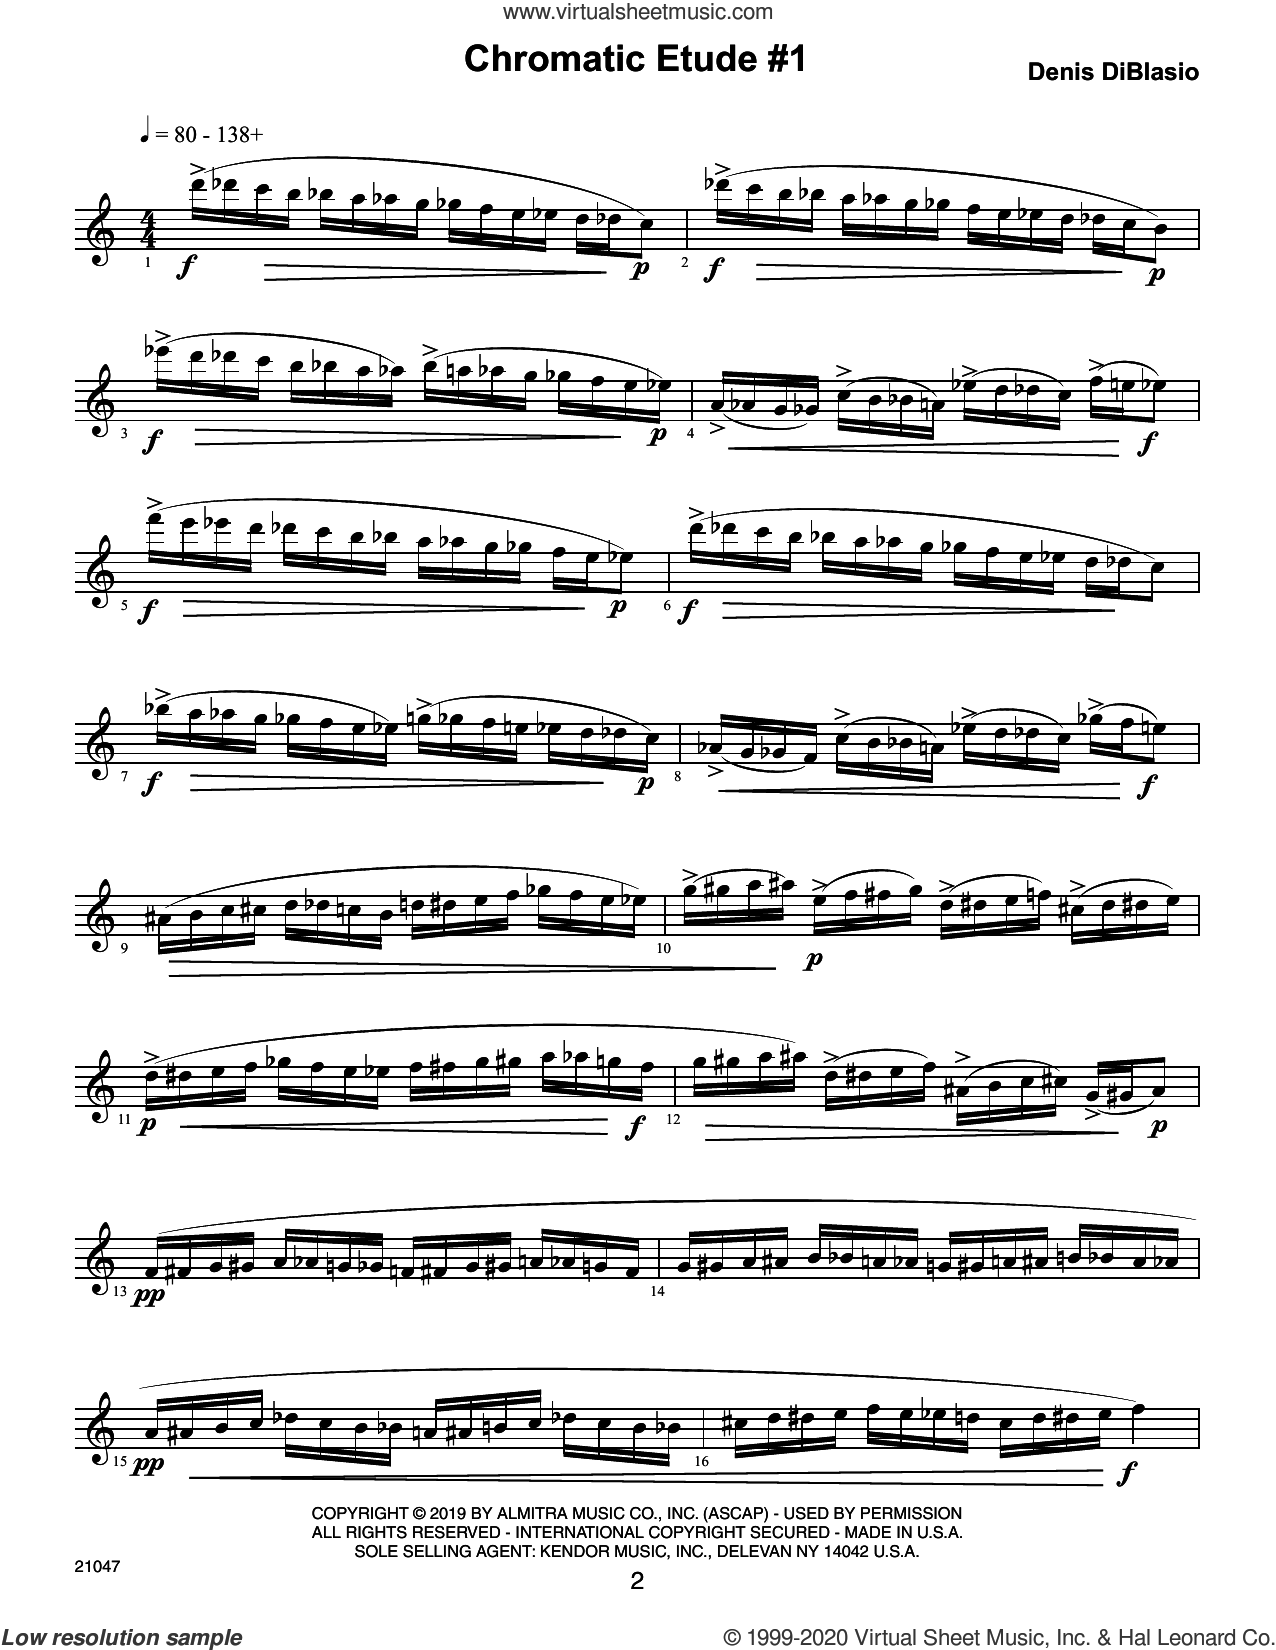 Chromatic Etudes And Sound Patterns For Saxophone sheet music for alto saxophone by Denis DiBlasio, classical score, intermediate skill level